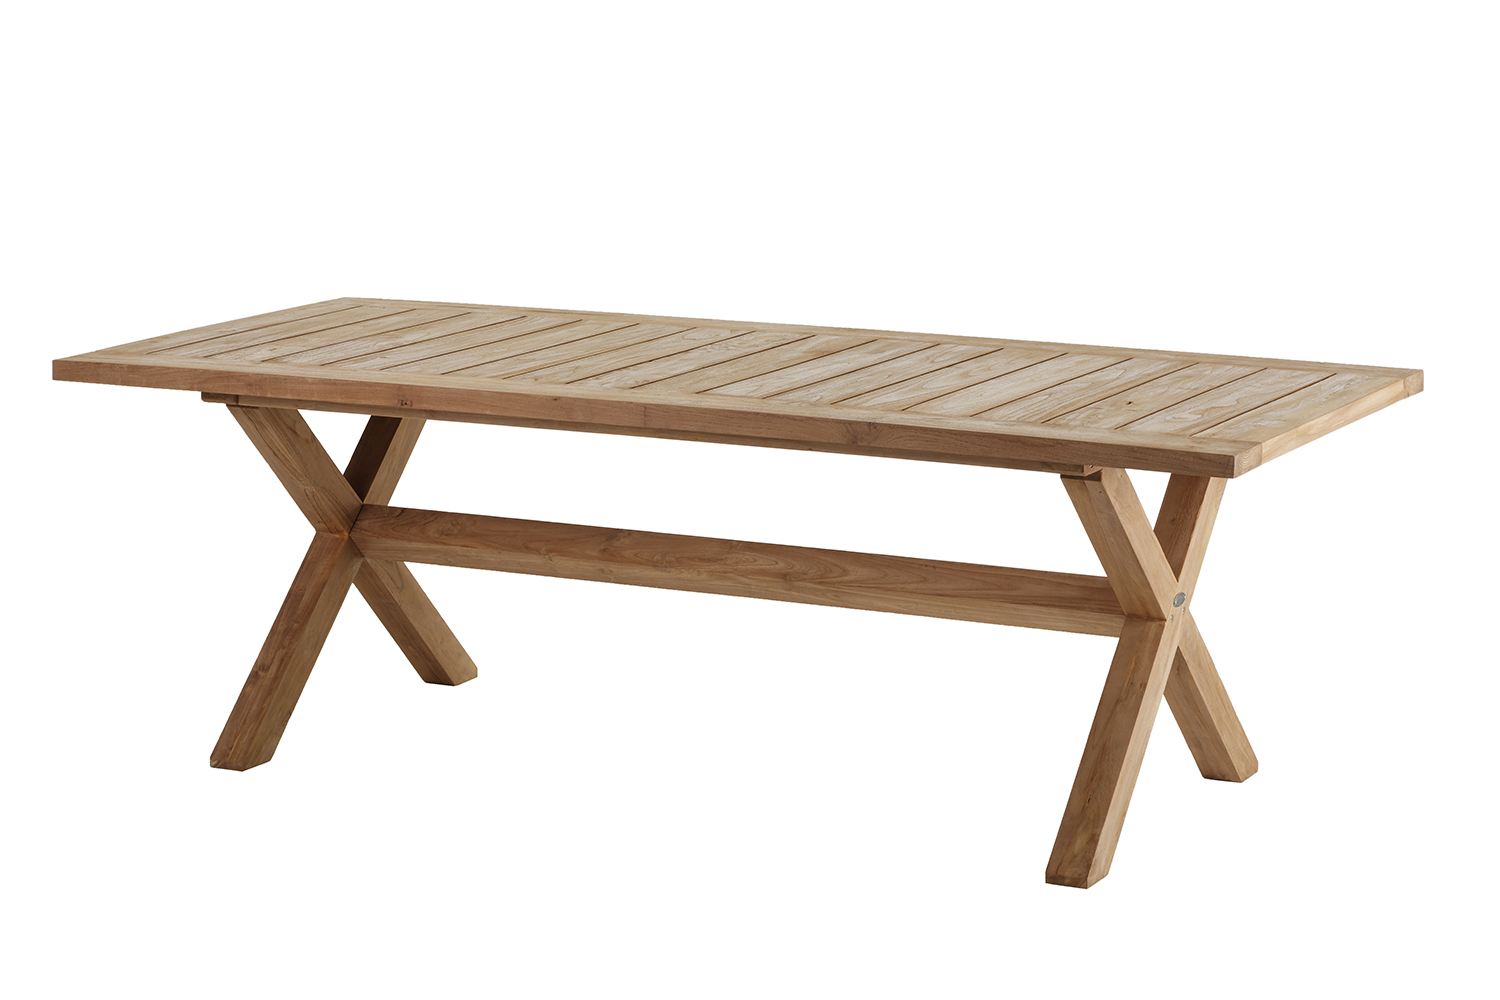 Boulogne Tisch 240 cm Recycled Teak (Natur)